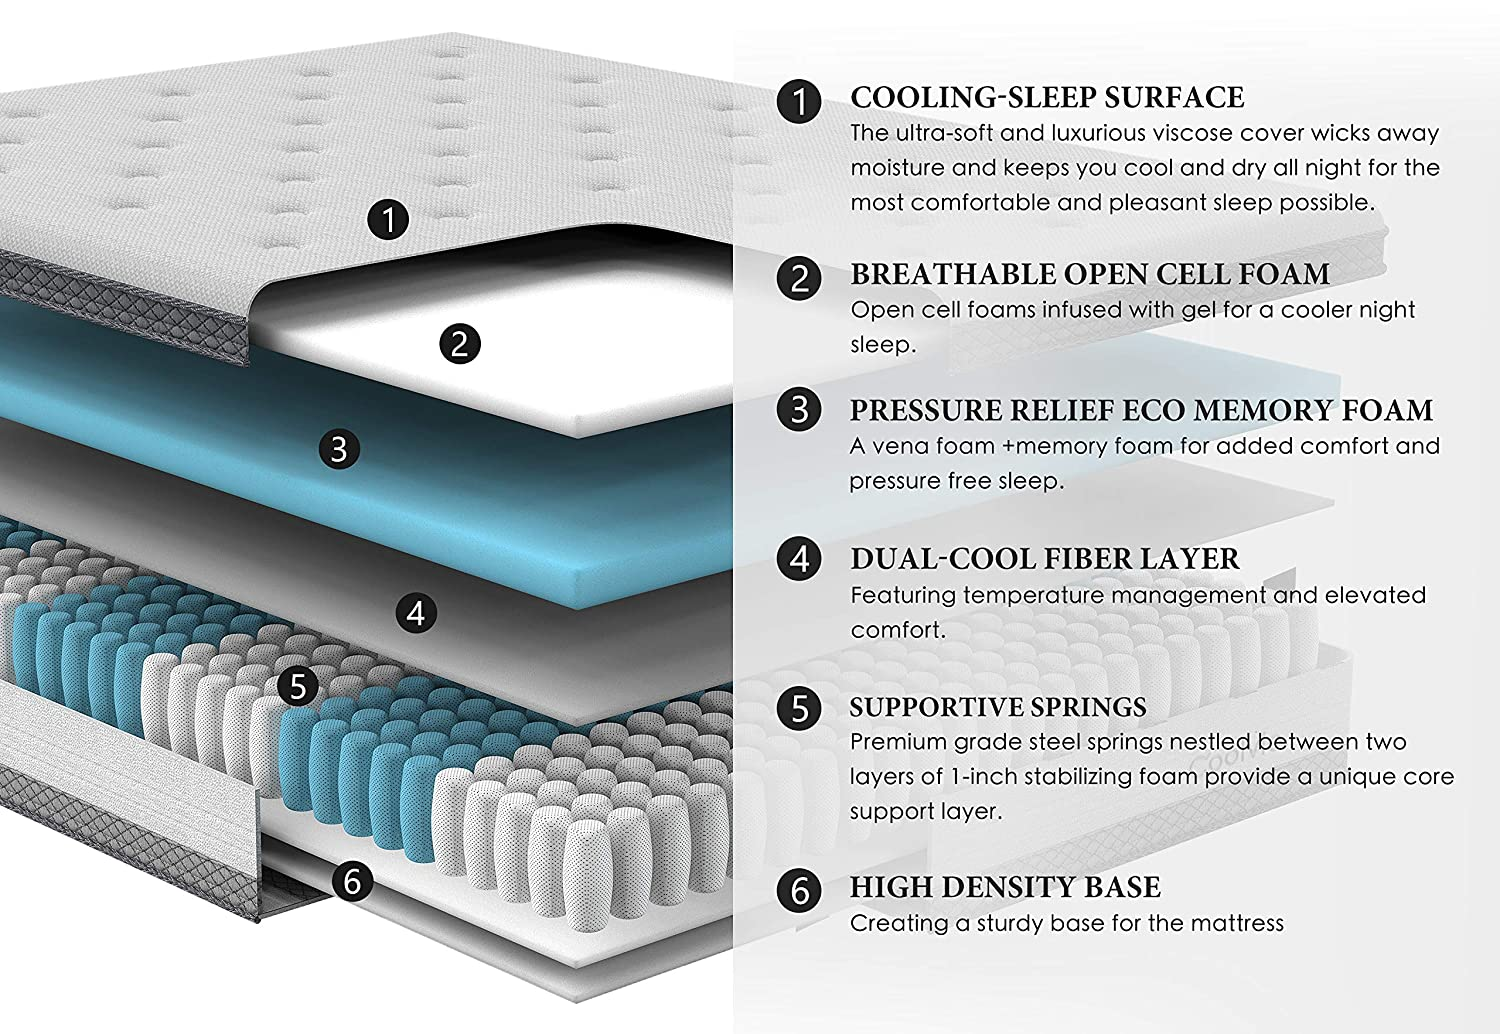 Queen Mattress, Coolvie 10 Inch Memory Foam and Innerspring Hybrid Mattress in a Box, Individually Pocket Spring with Multi Layer Comfy Memory Foam, CertiPUR-US Certified, No-Risk 100 Night Trial